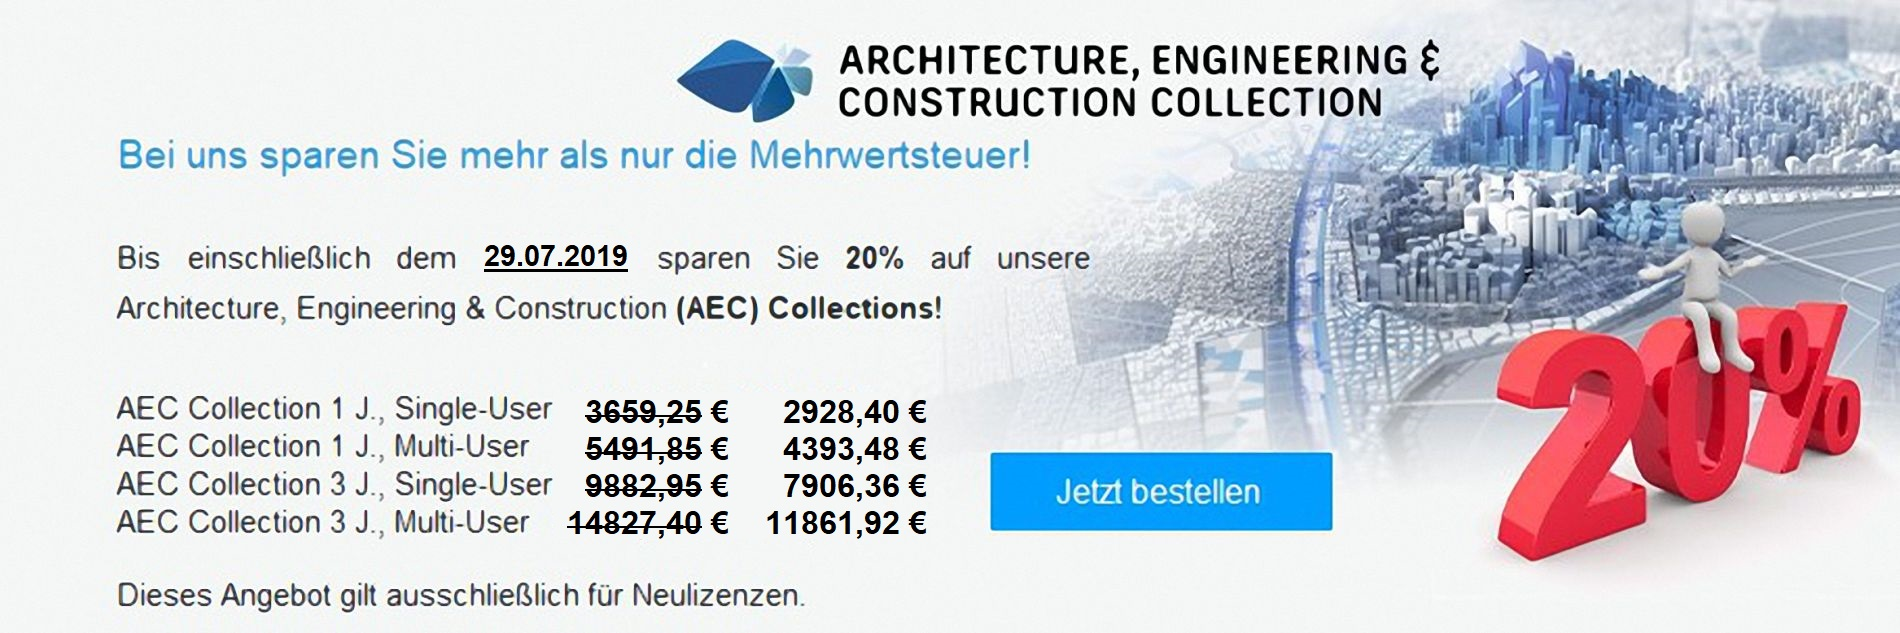 Autodesk Architecture, Engineering & Construction (AEC) Collection 20 Prozent Rabatt Aktion